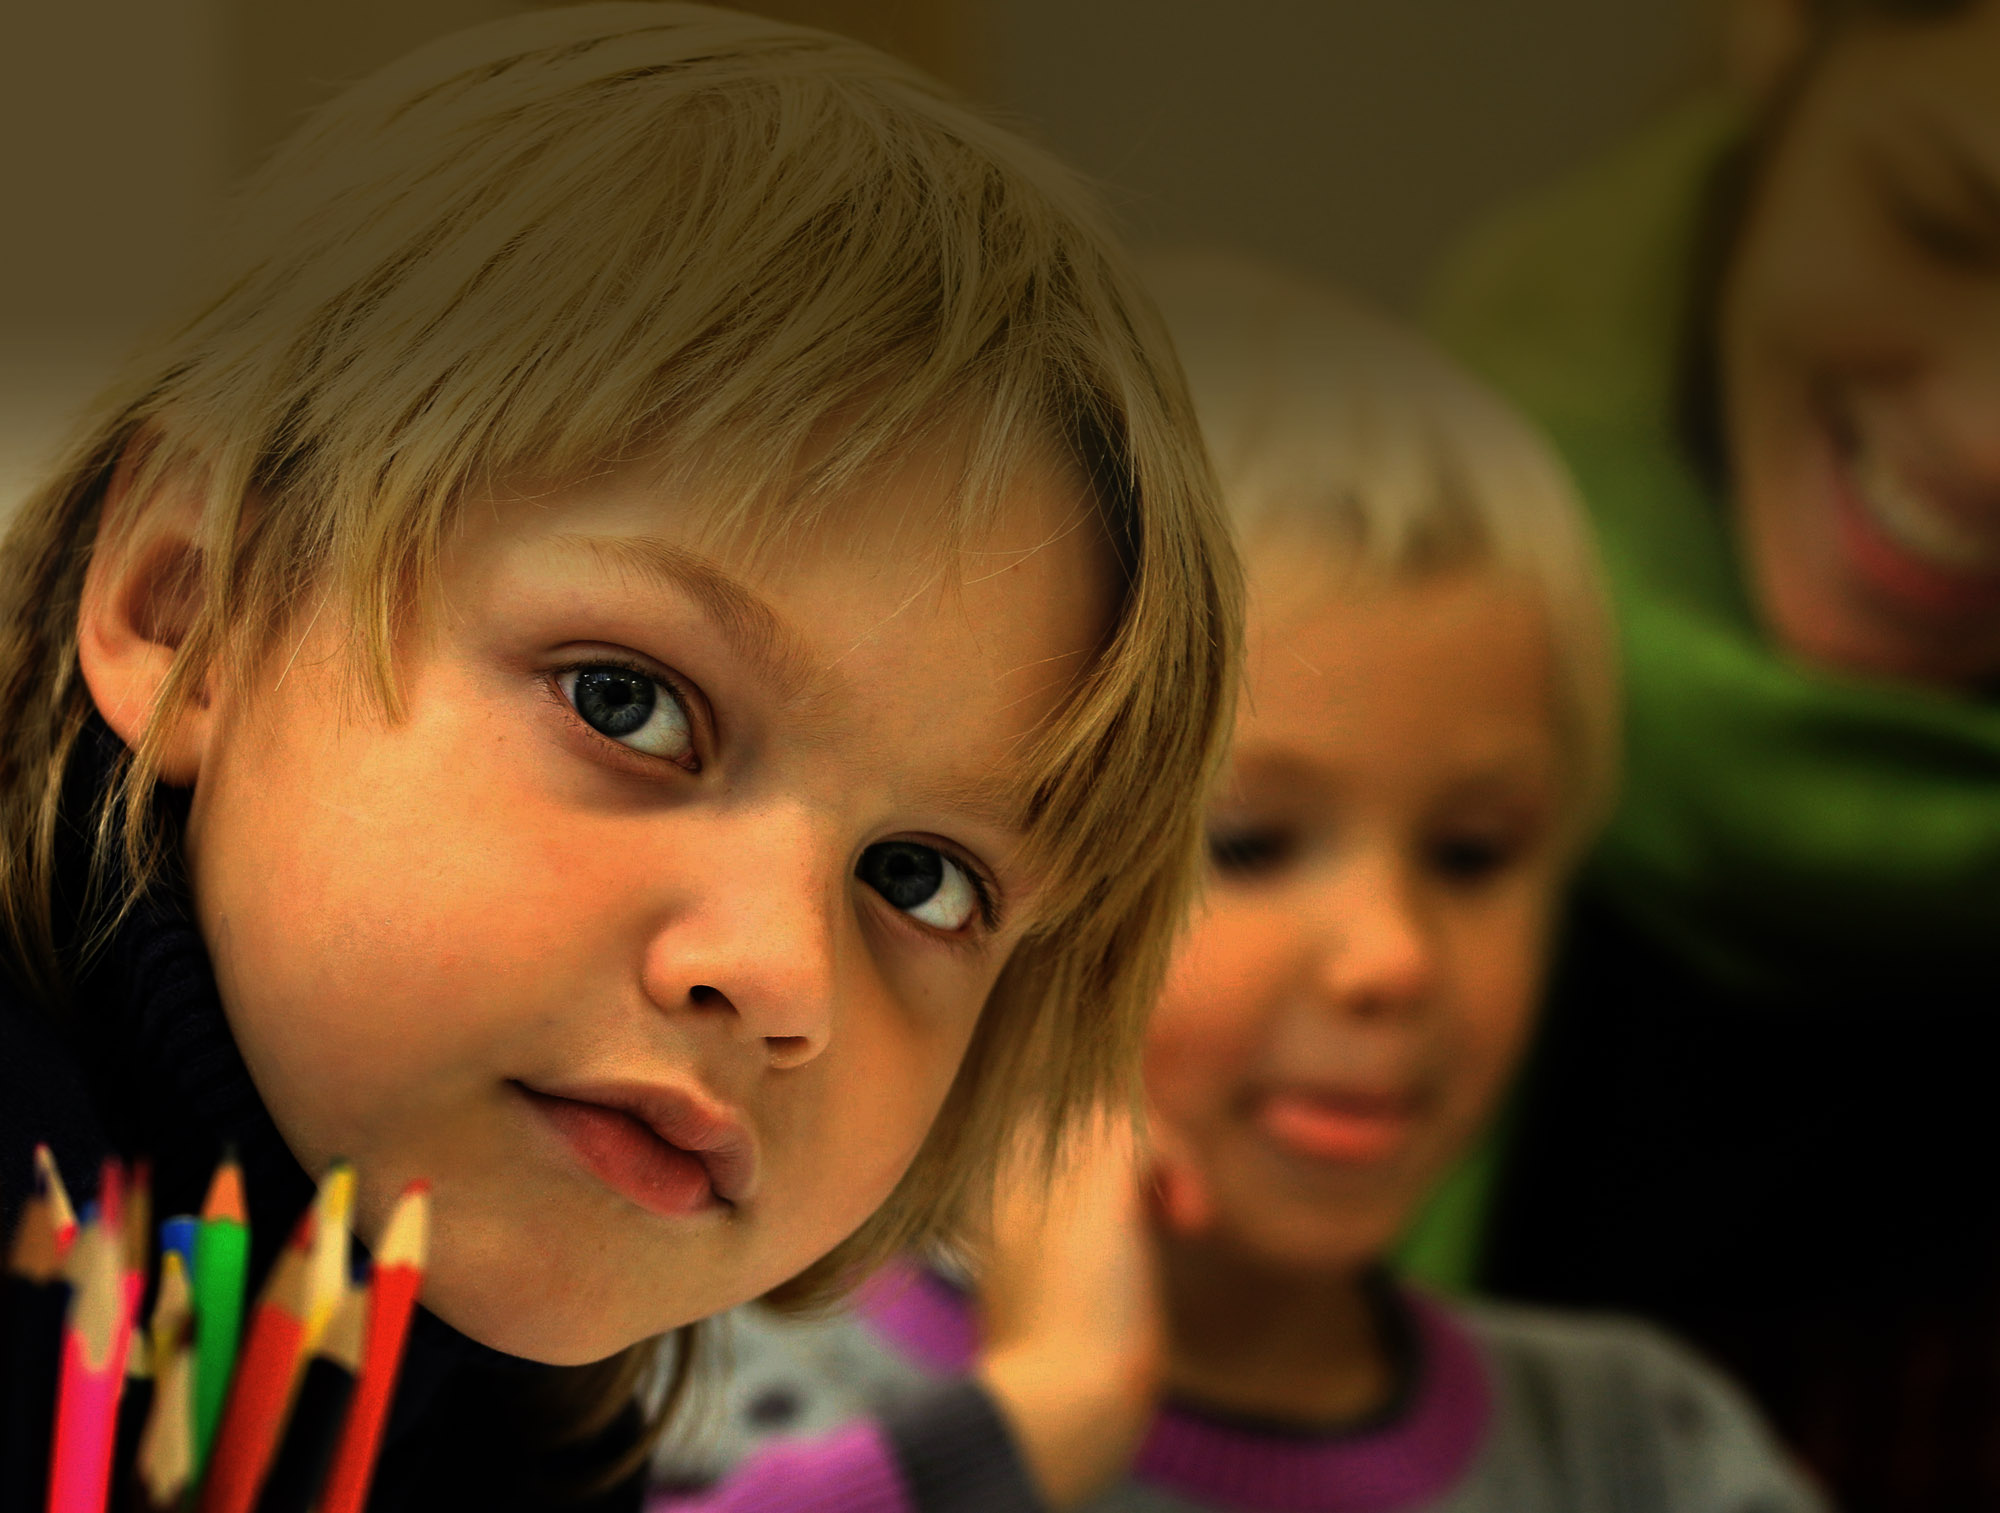 A boy looking over a set of color pencils. In the background are another child and a woman.